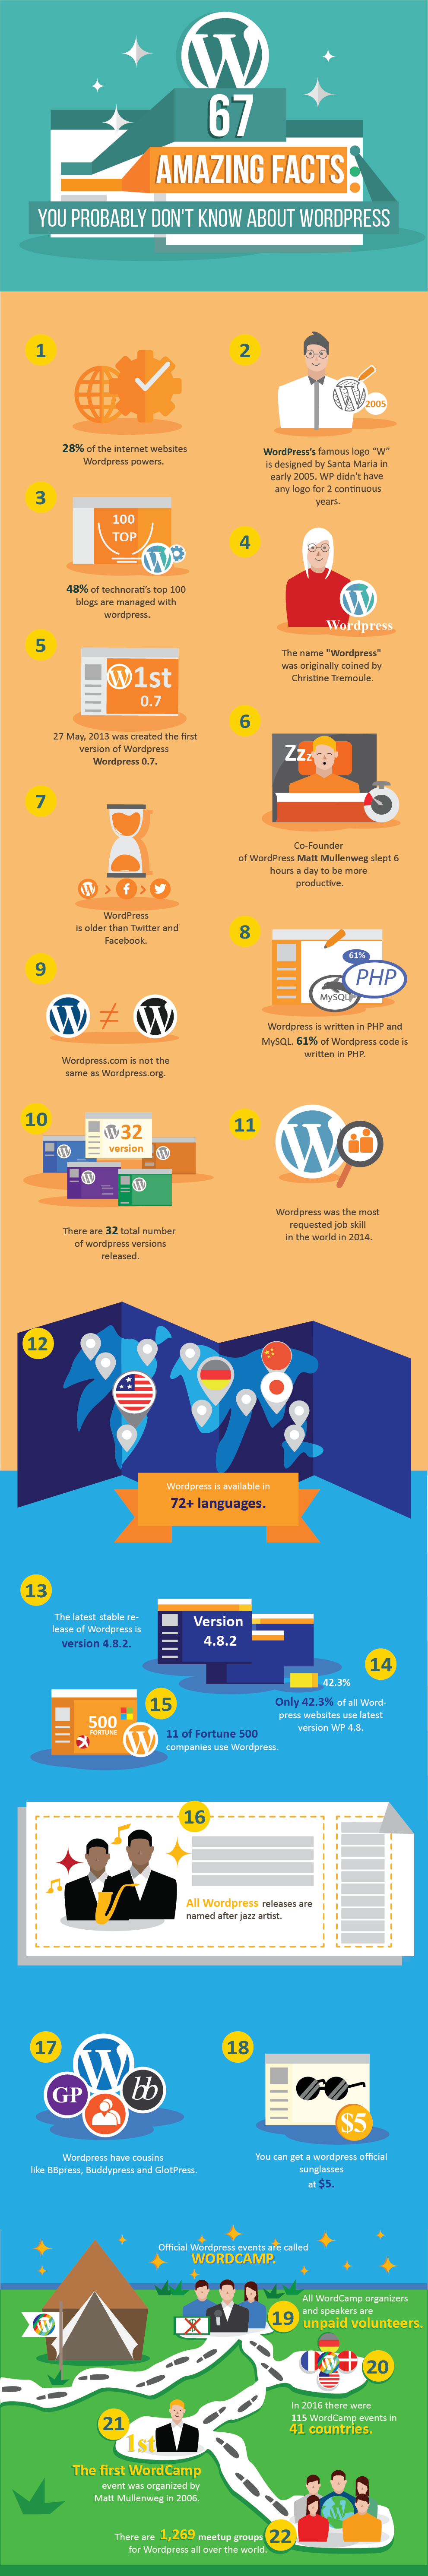 amazing facts about wordpress infographic